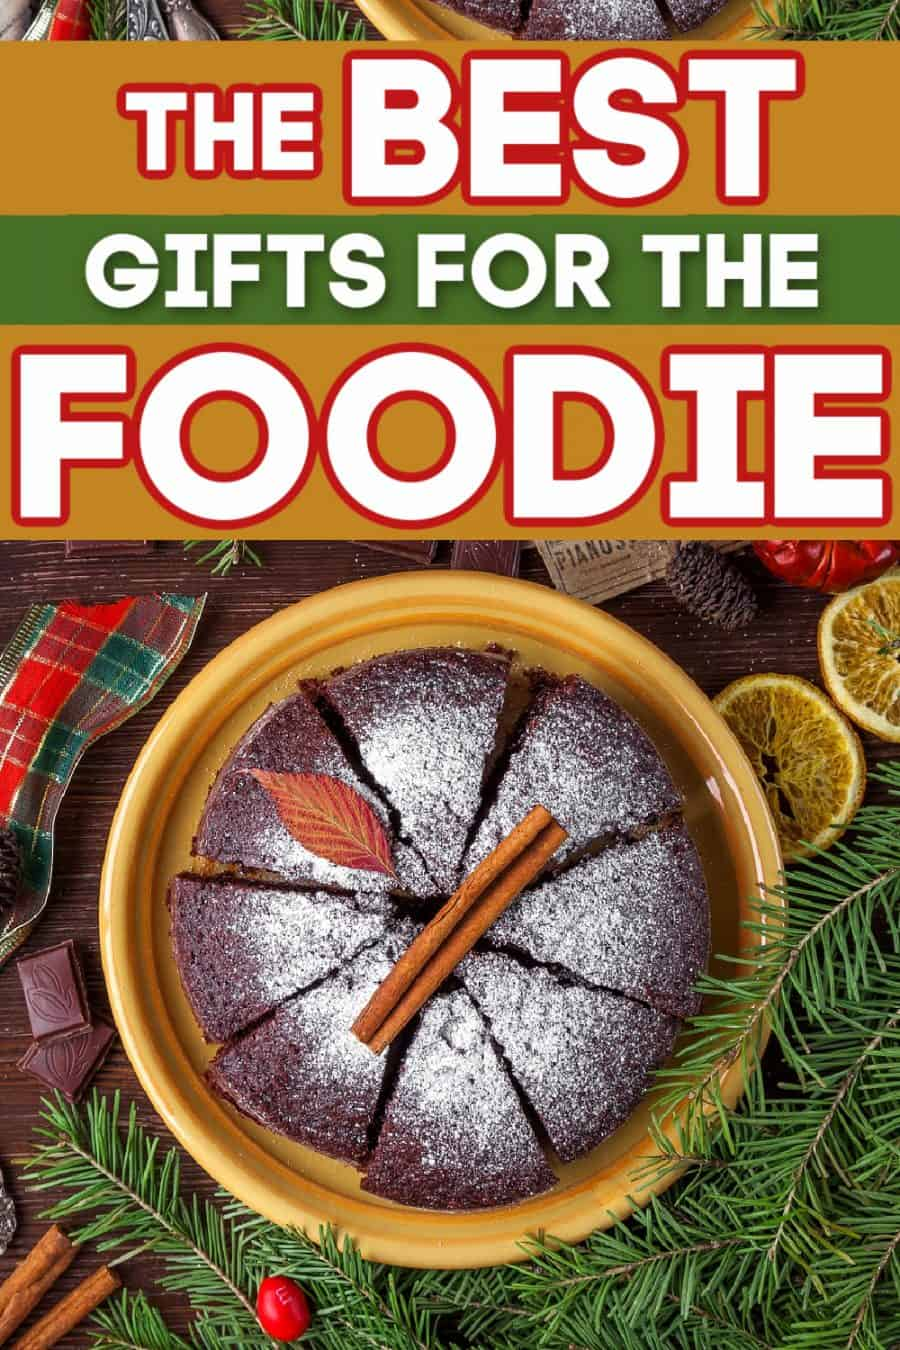 Best Gifts For The Foodie (2020 Foodie Holiday Gift Guide)